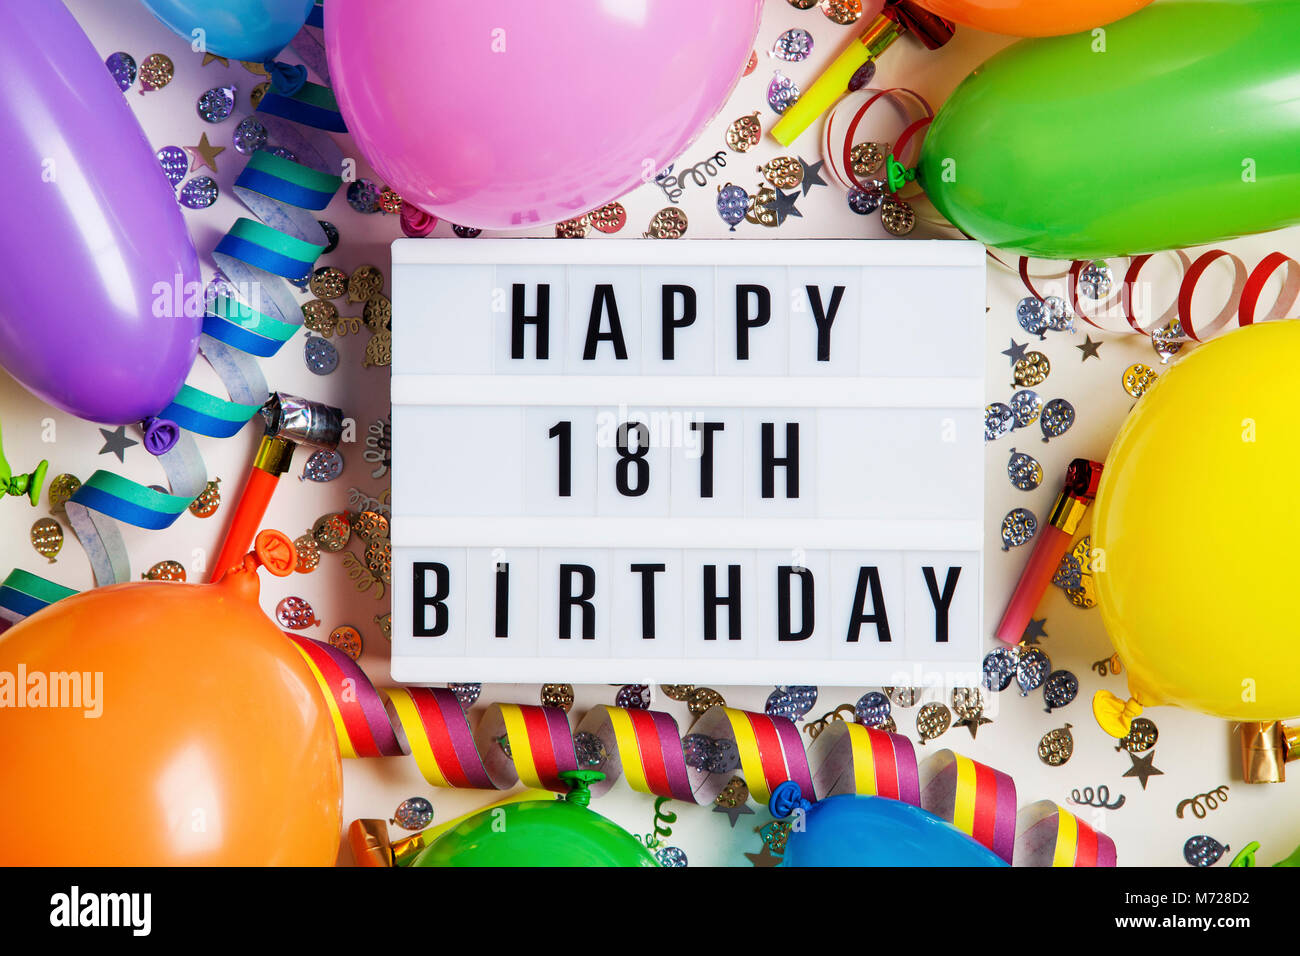 Happy 18th Birthday Celebration Message On A Lightbox With Balloons And Confetti